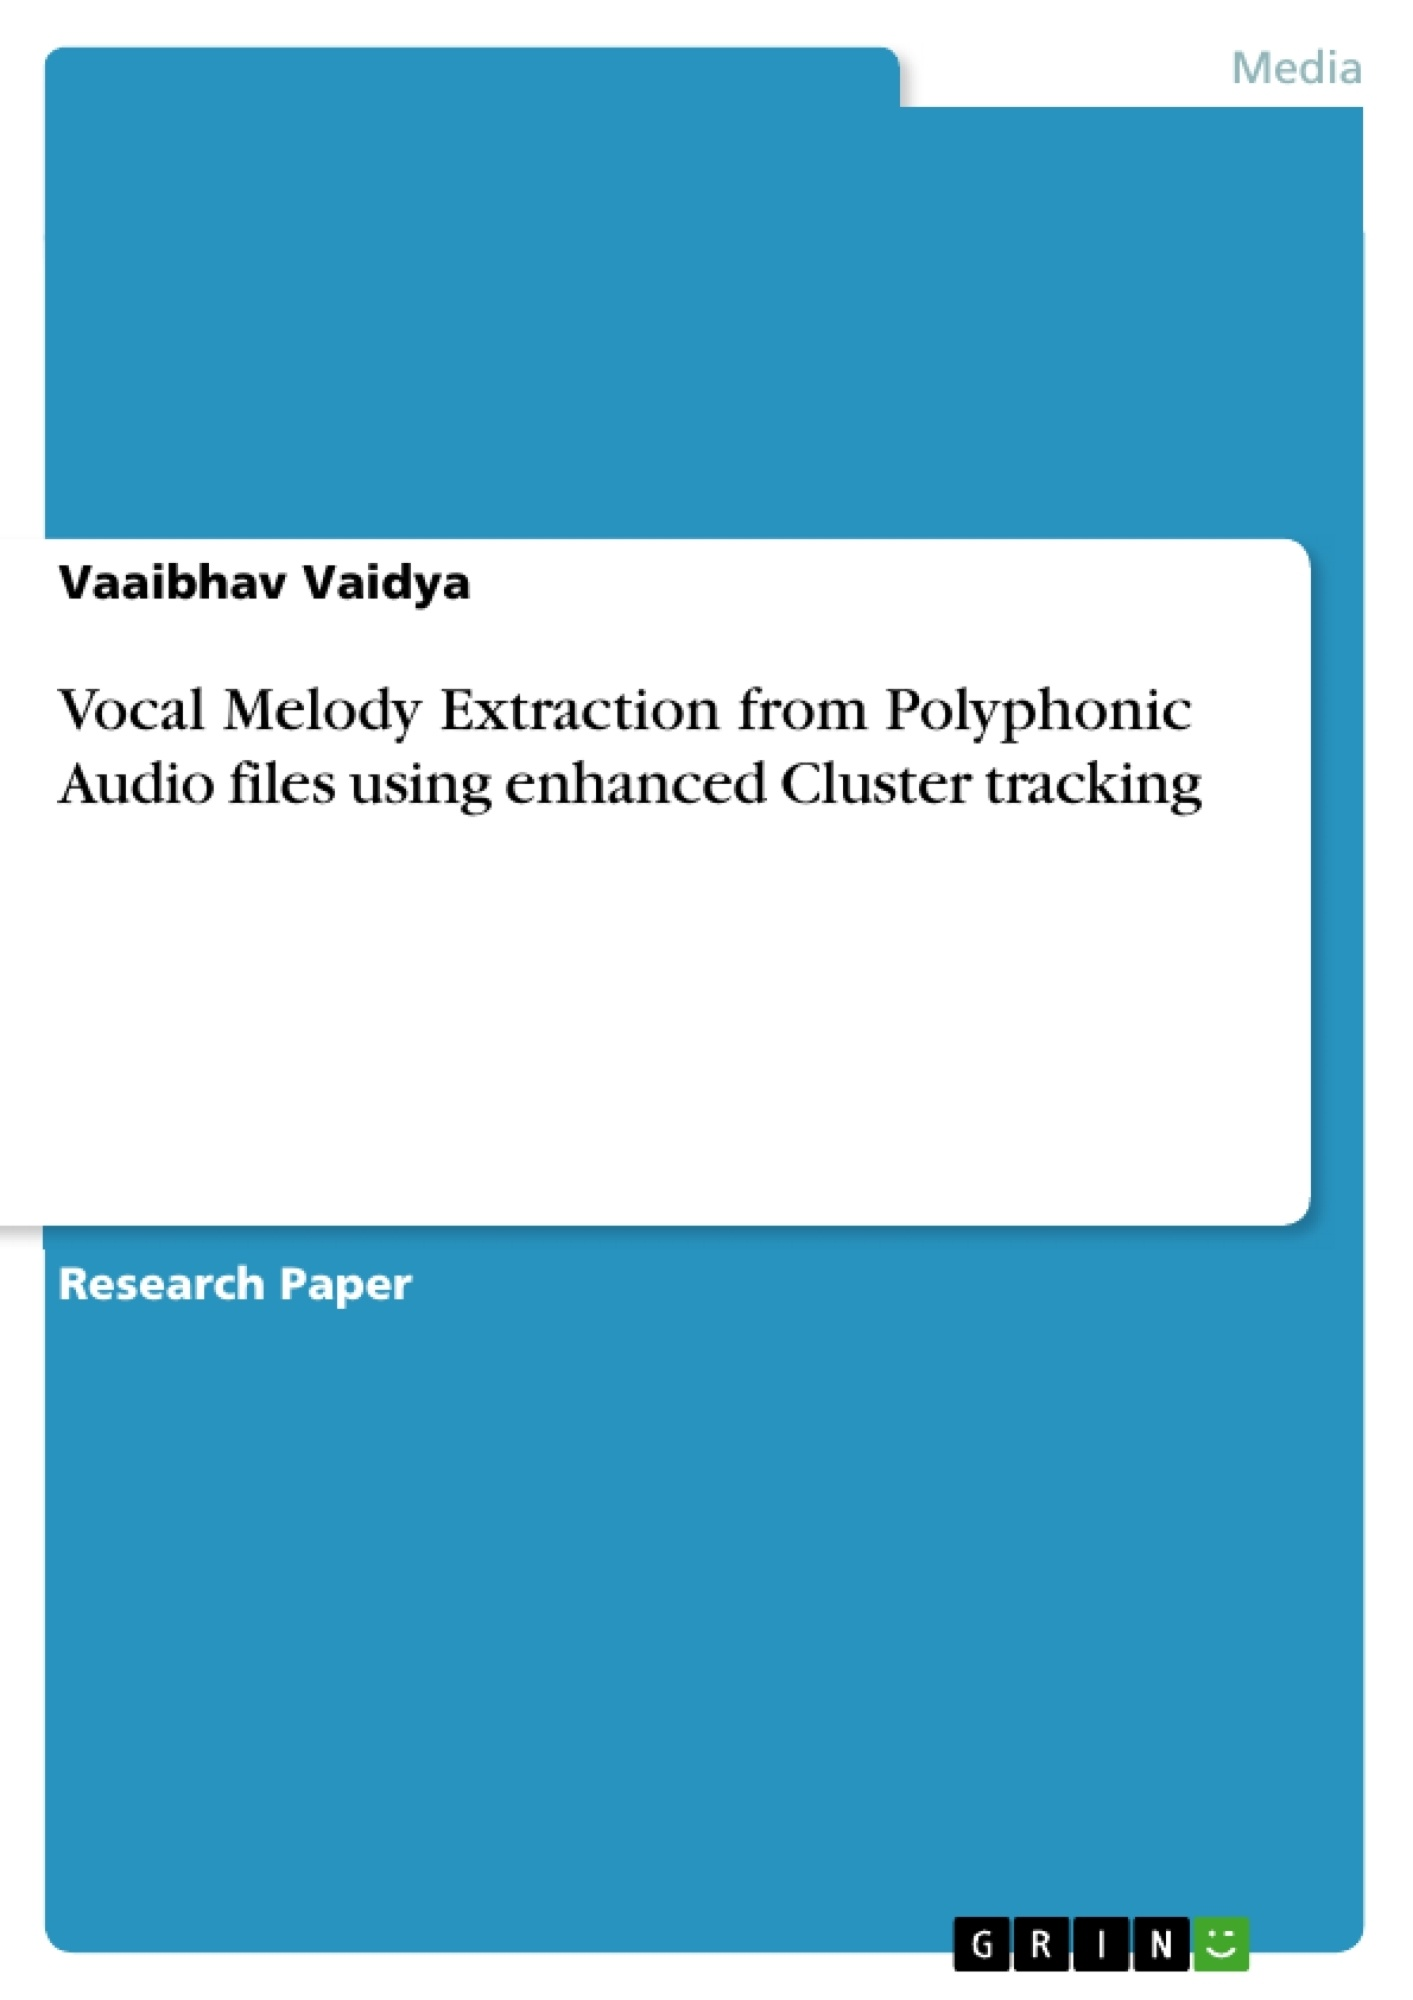 Title: Vocal Melody Extraction from Polyphonic Audio  files using enhanced Cluster tracking